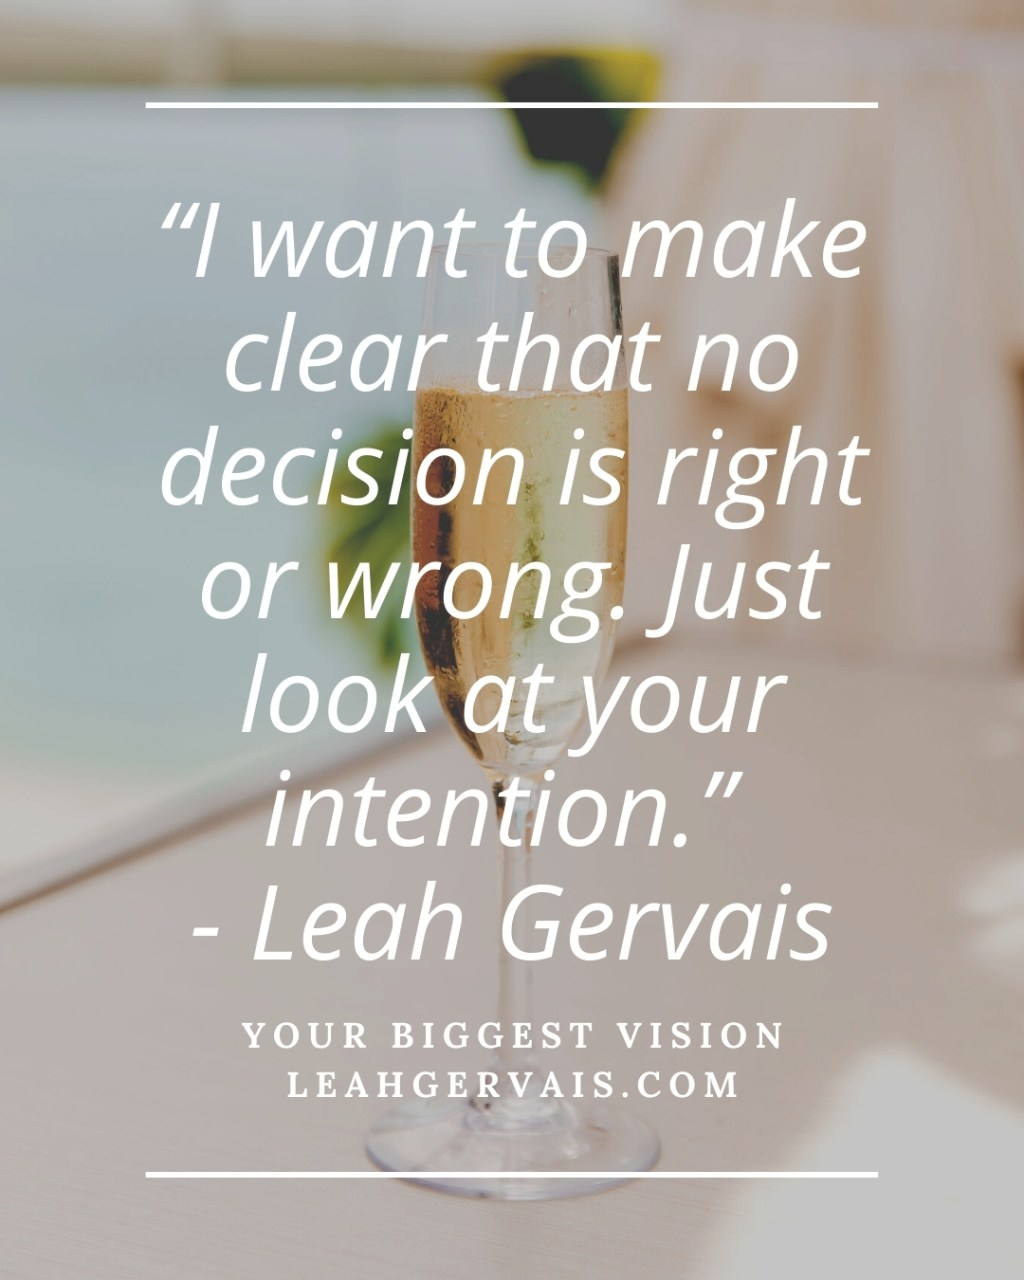 Leah Gervais- 6 figures with mindset shift